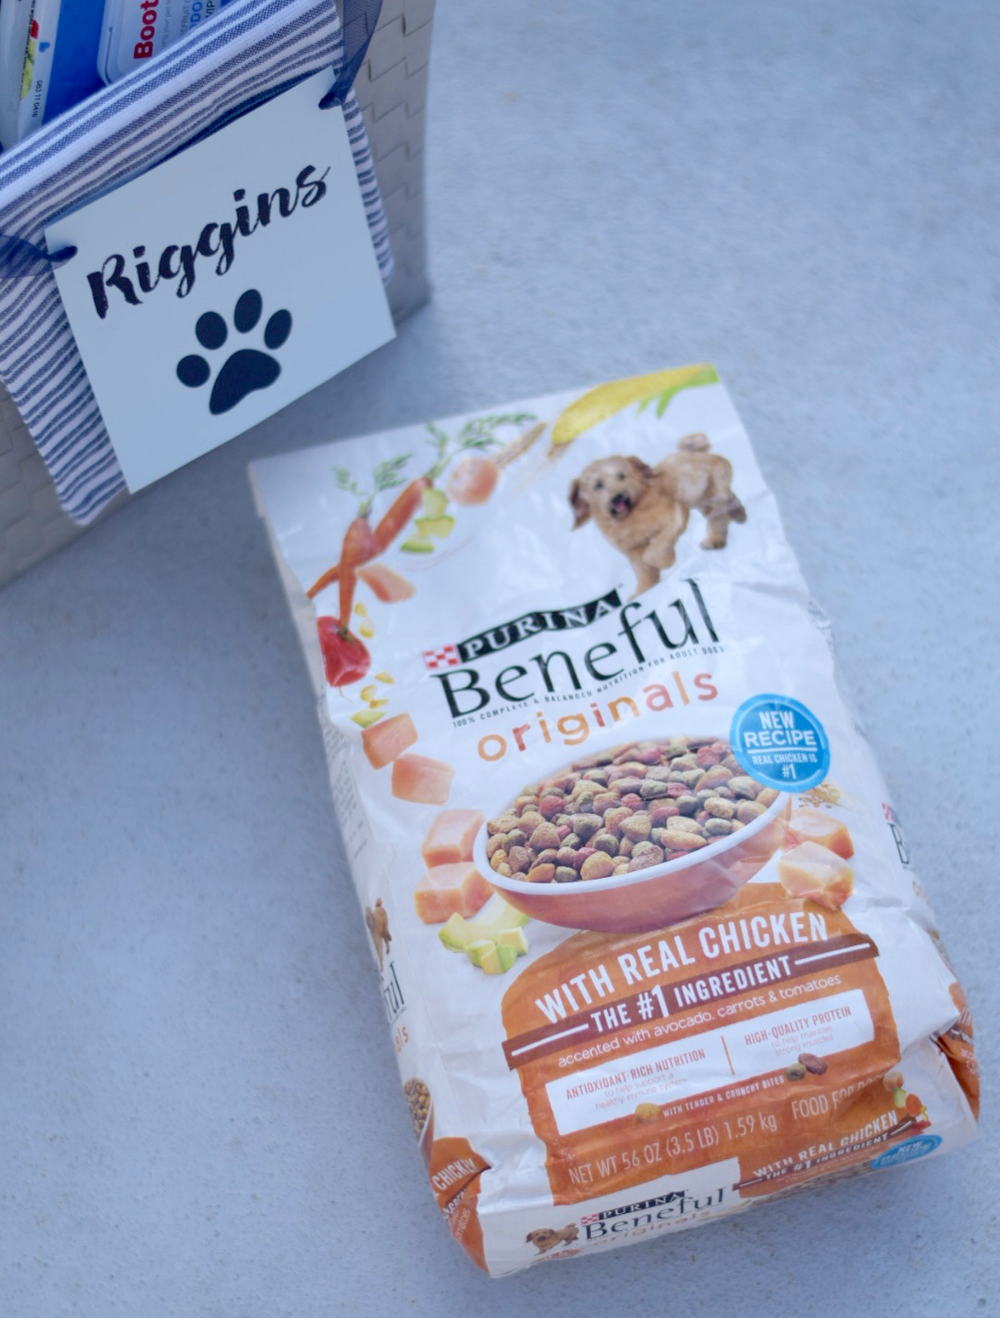 Puppy Travel Essentials / Everything you need for traveling with a puppy. #ad #feeddogspurina @target